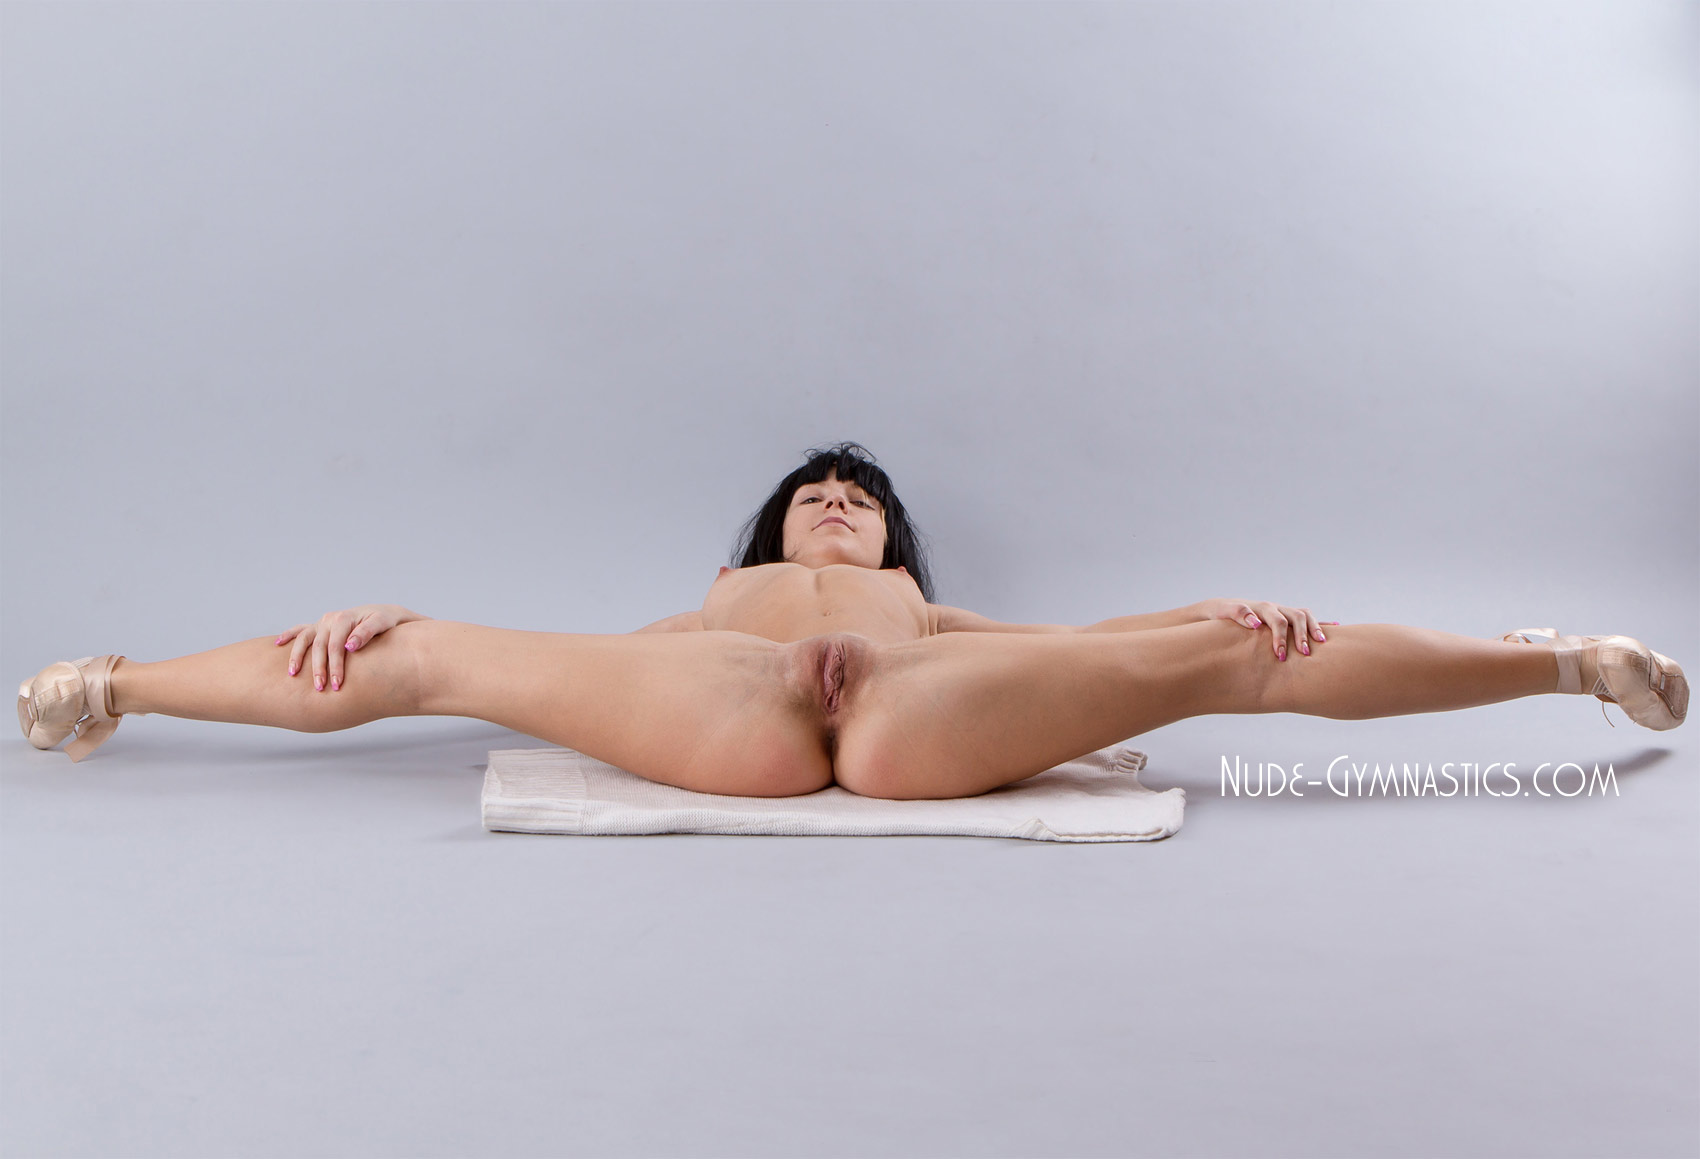 nude splits gymnast Female